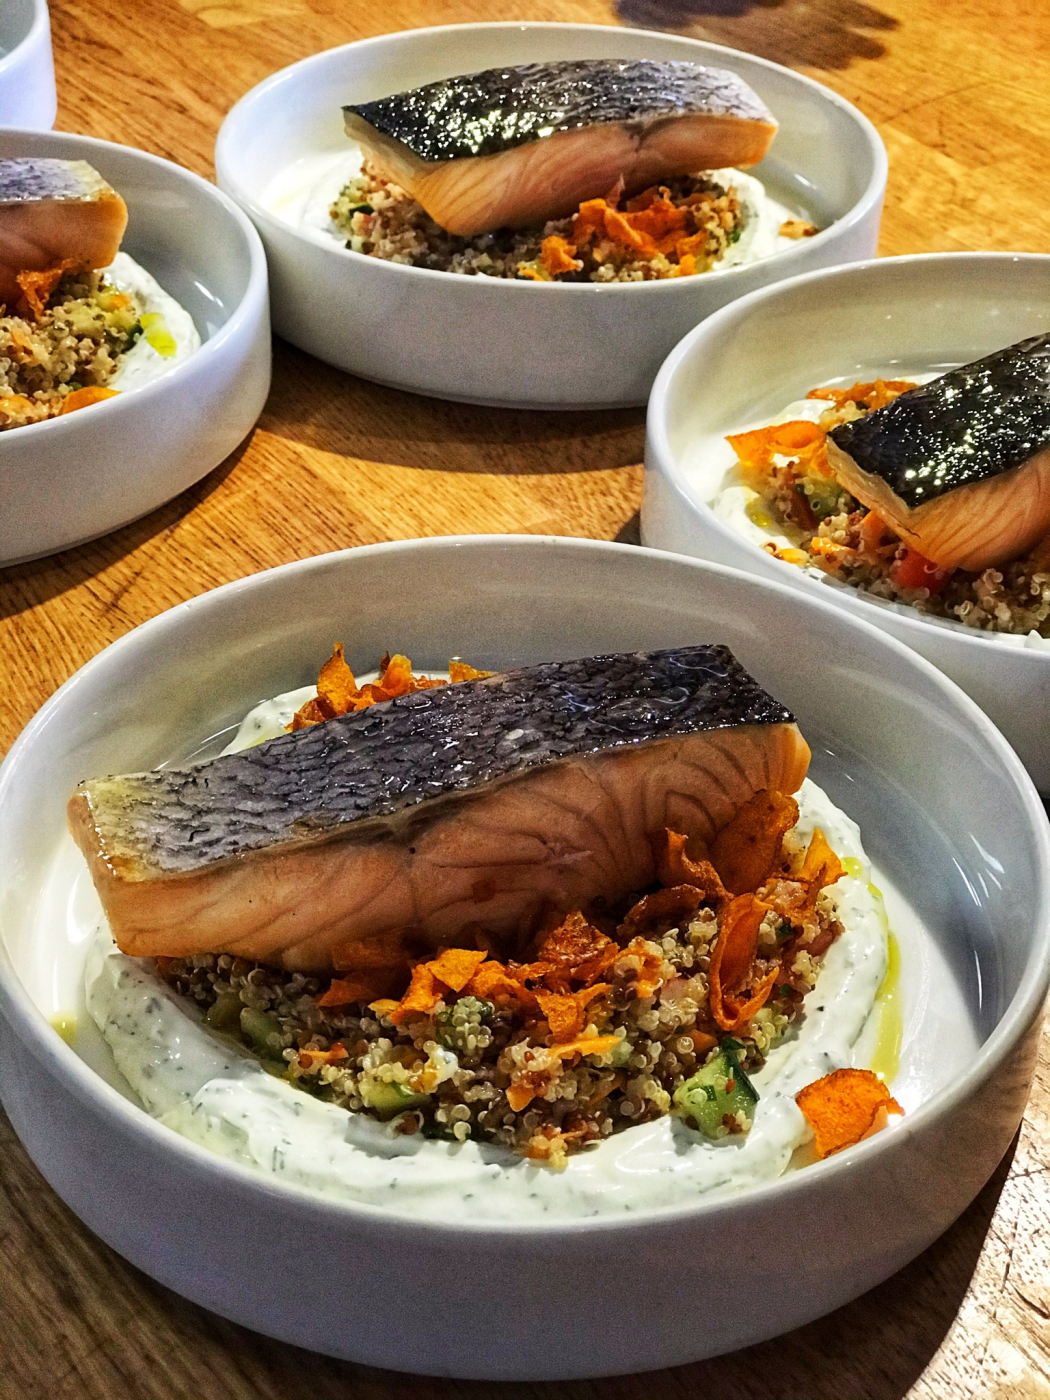 Fried salmon over quinoa taboulé and dill labaneh